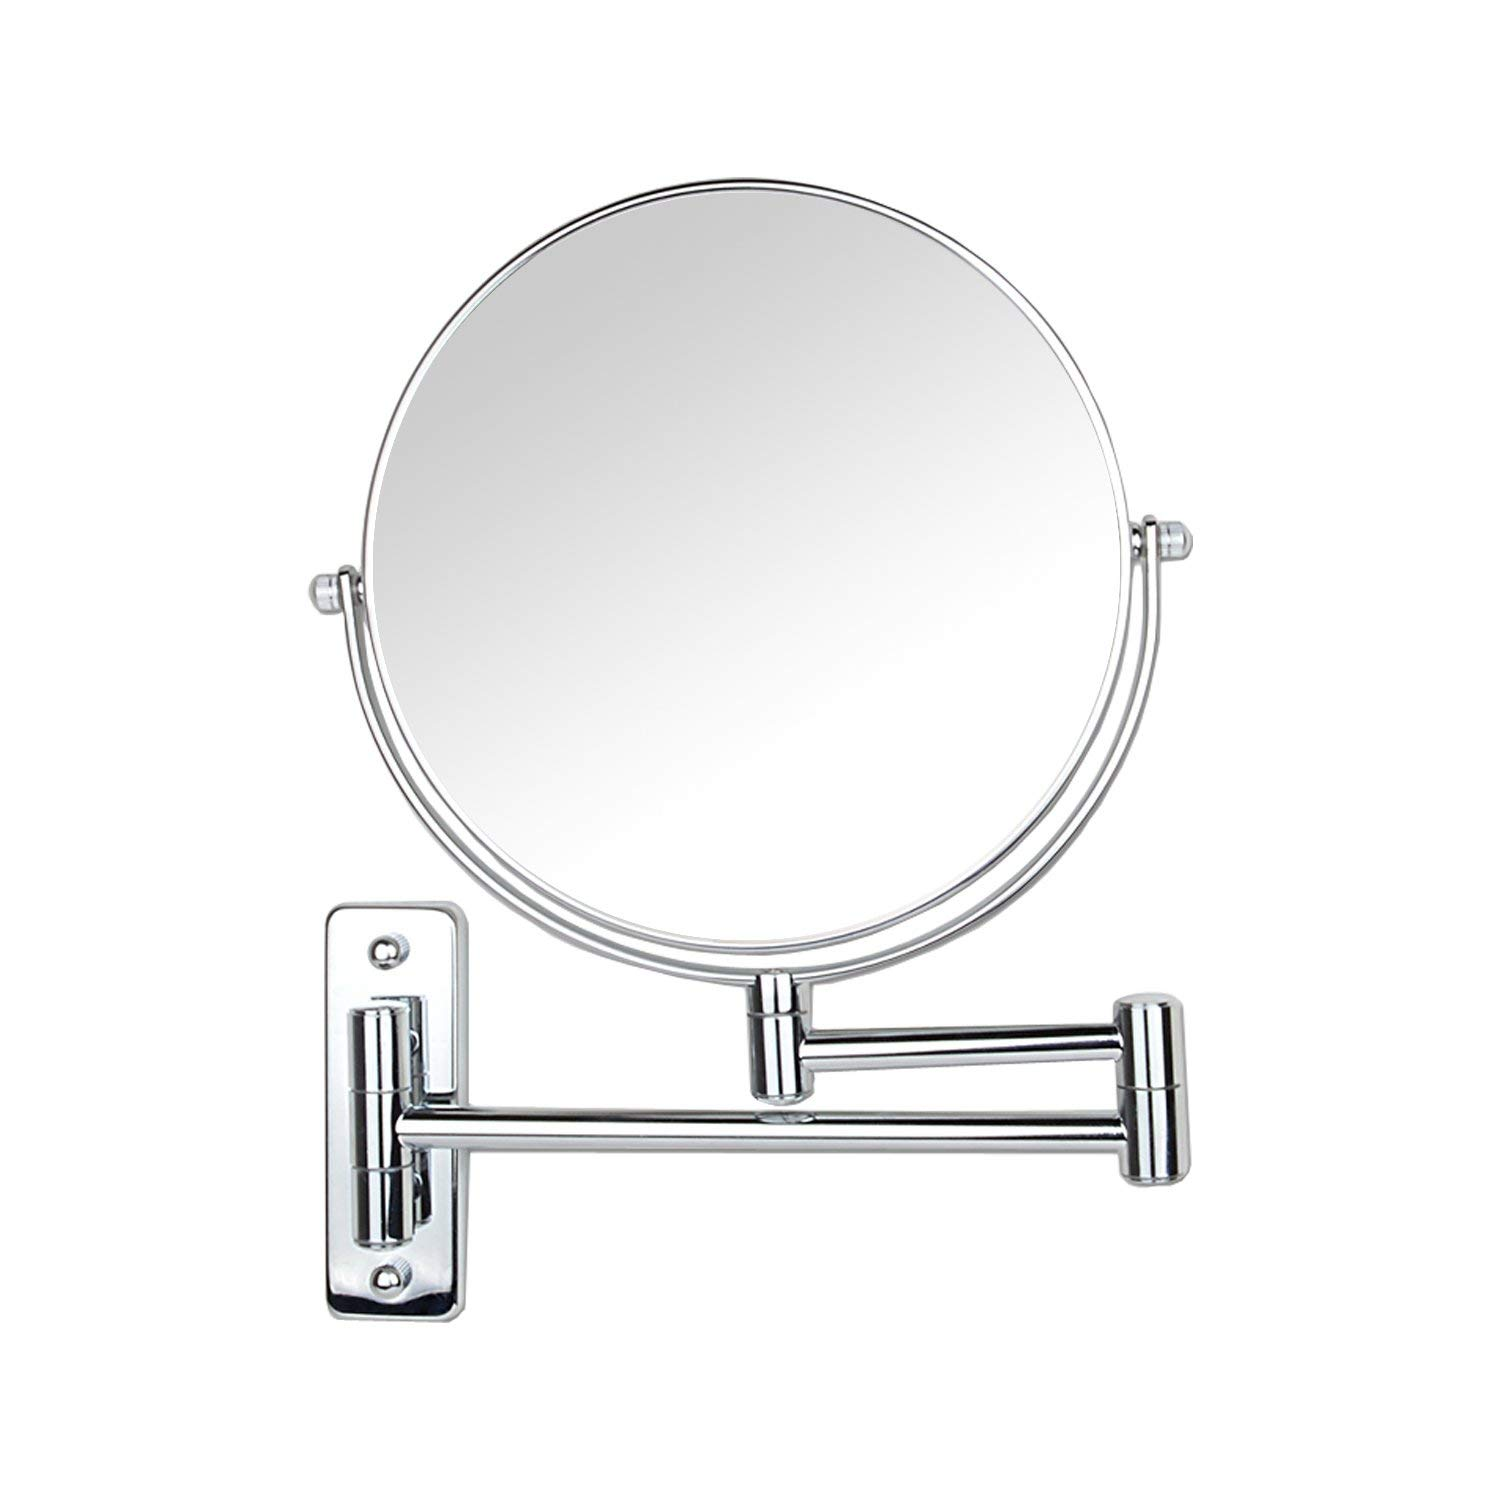 Naturous Wall Mounted Makeup Mirror, 8-Inch Two-Sided Extension Wall Mount Mirror with 3x Magnification, 12-Inch Extension Chrome Finish